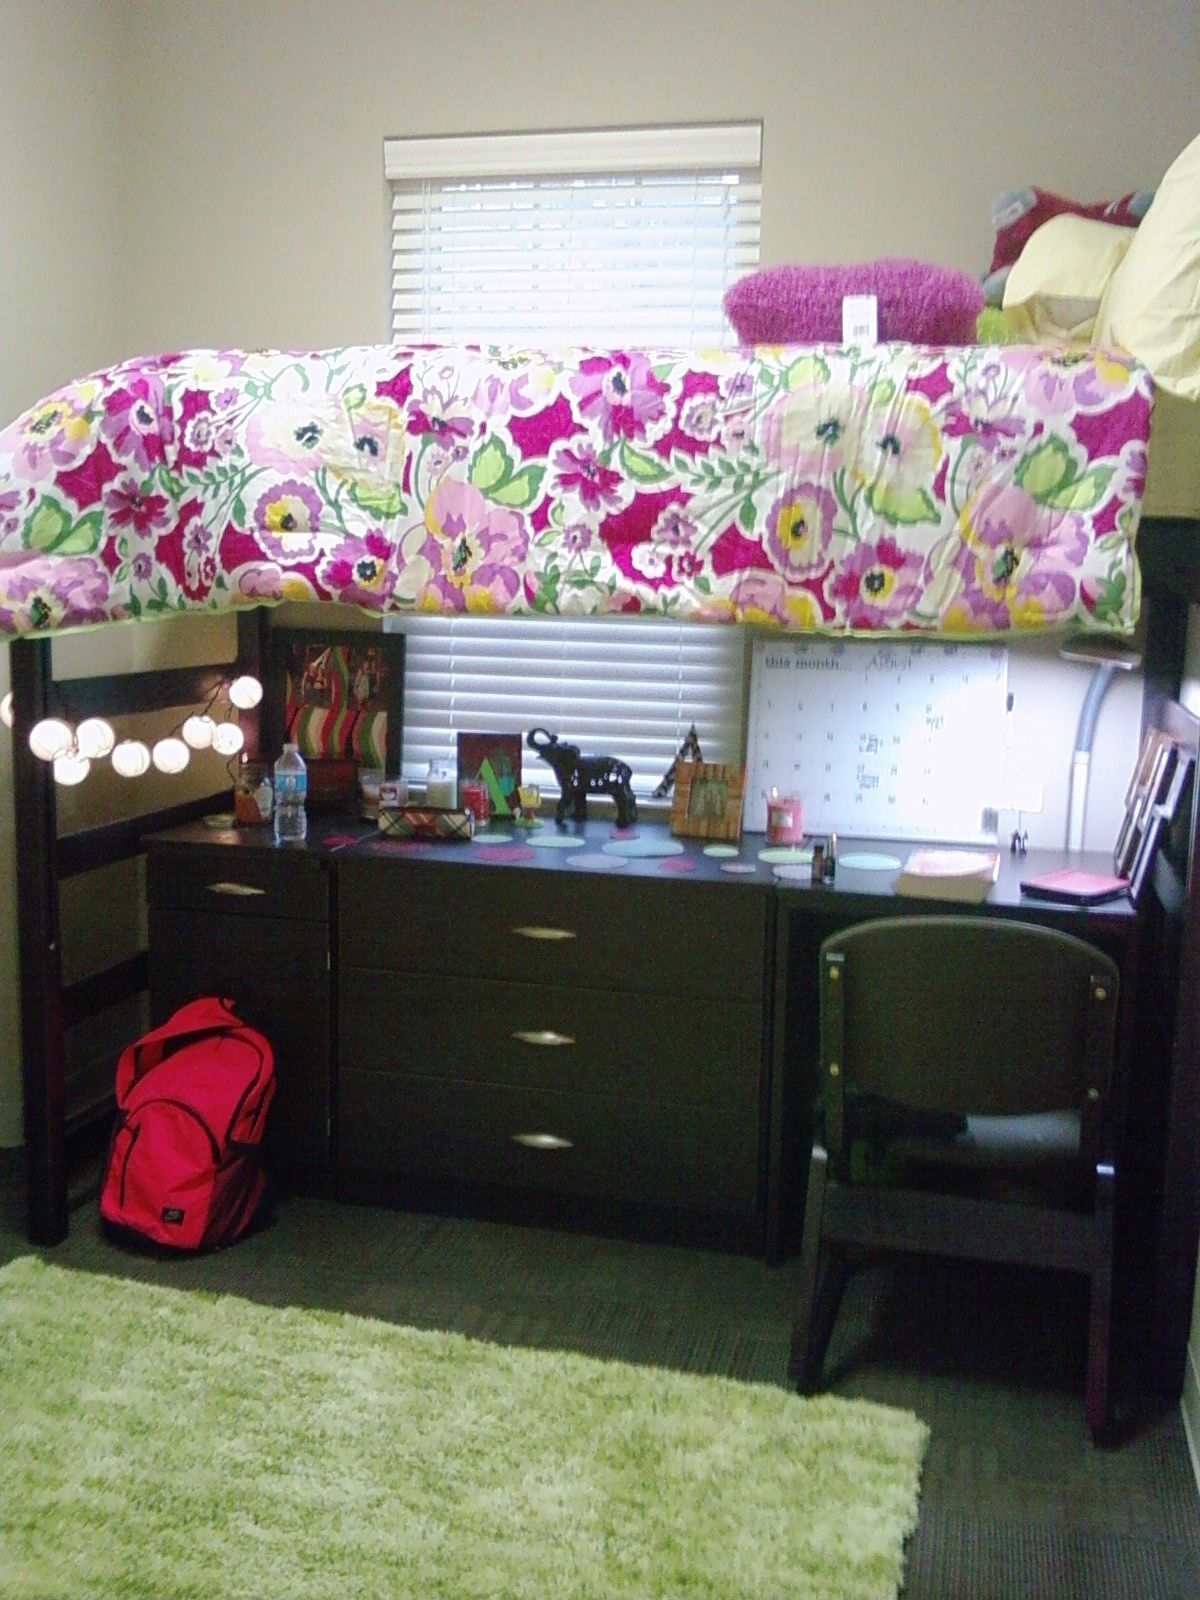 Accredited Online College Degree Dorm Dorm Room And Room Ideas - 4 ideas for a more stylish college dorm